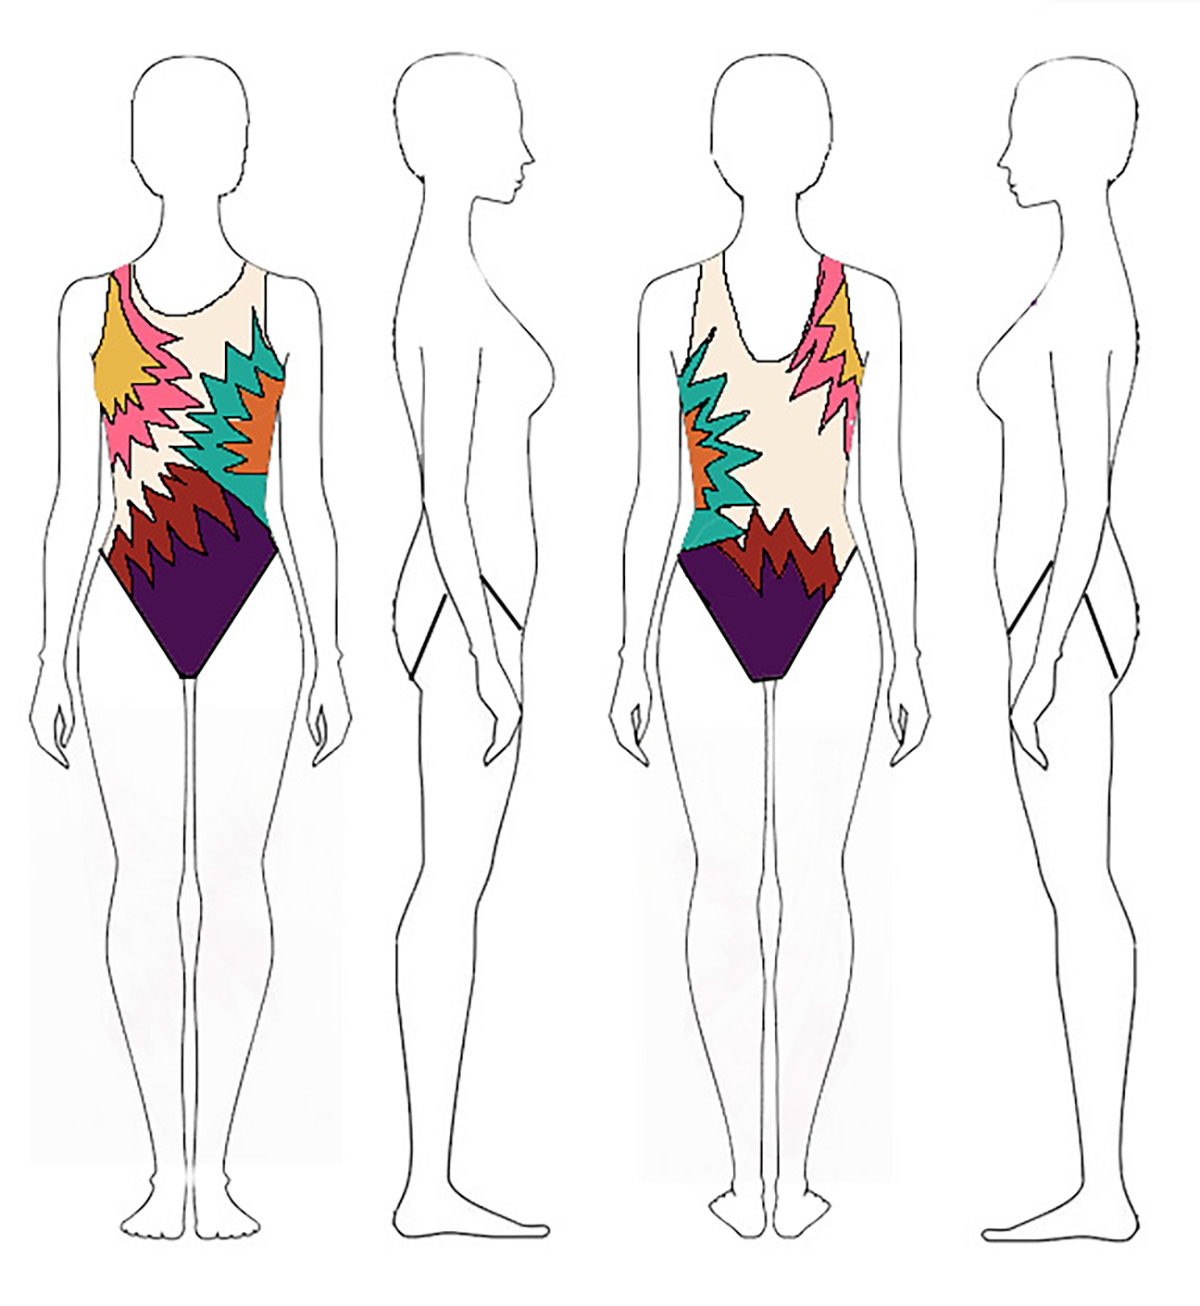 A sketch of 4 female figure outlines, showing front, back, right, and left views. The front and back views feature a synchro swimsuit design in bright coloured.